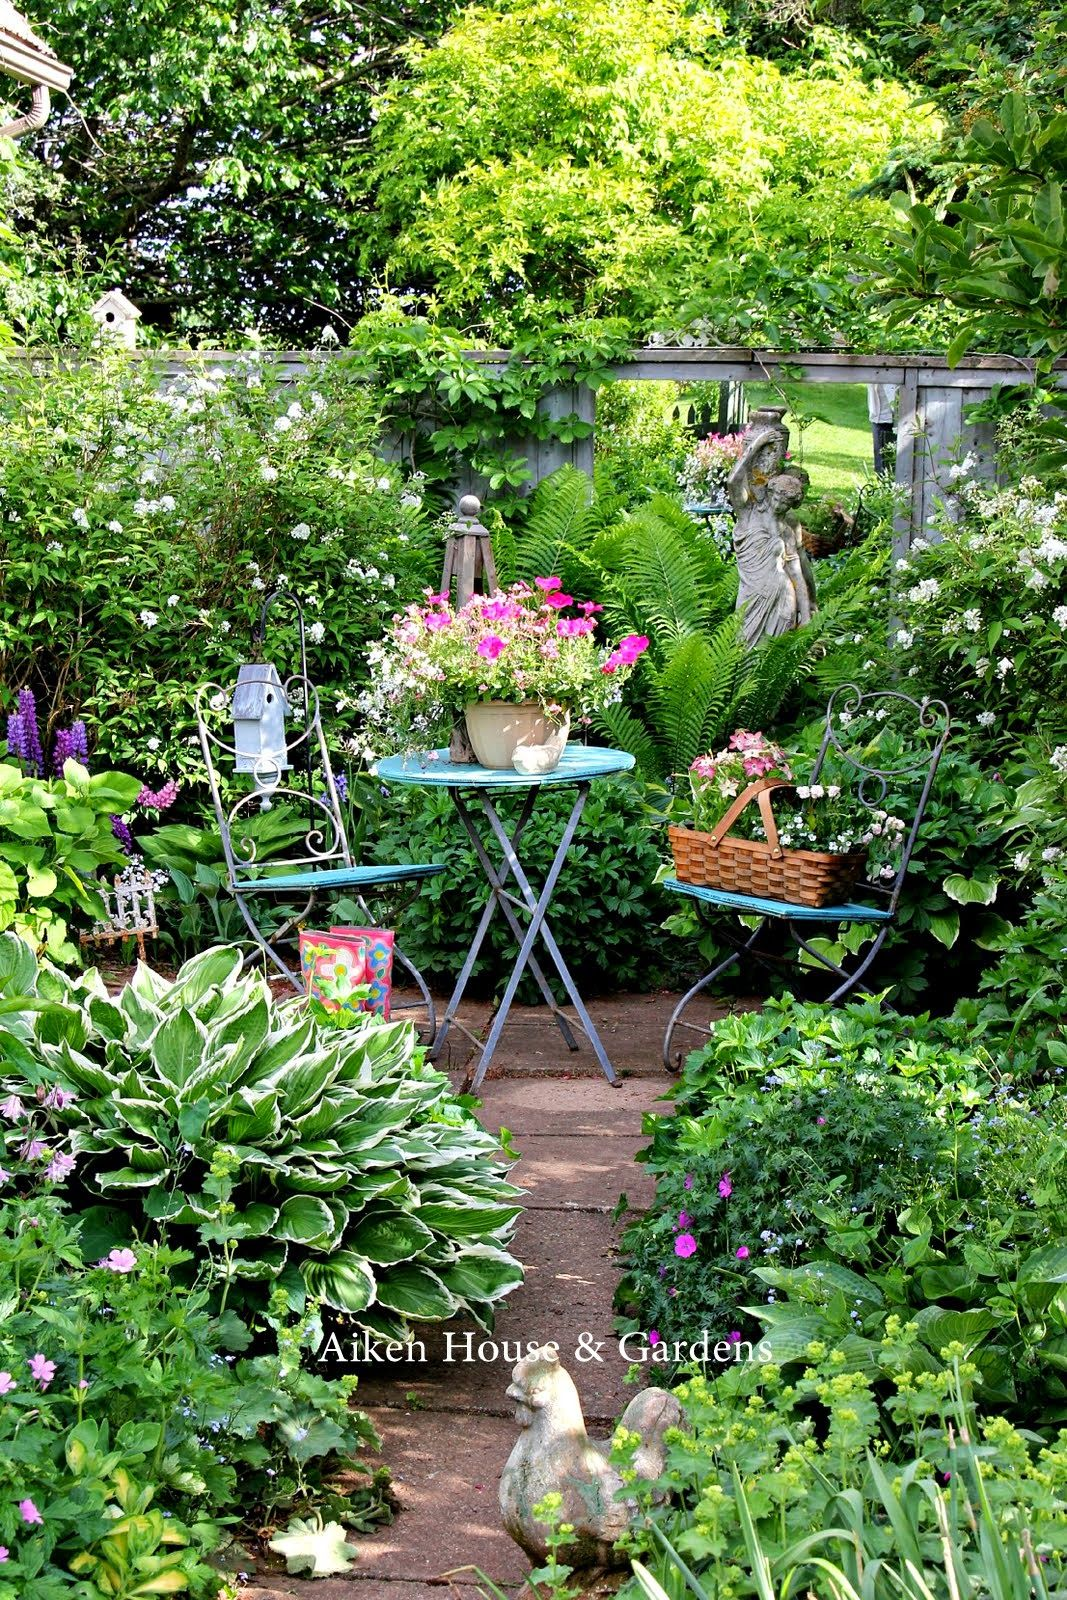 Aiken House & Gardens | Garden | Pinterest | Gardens, Summer and House